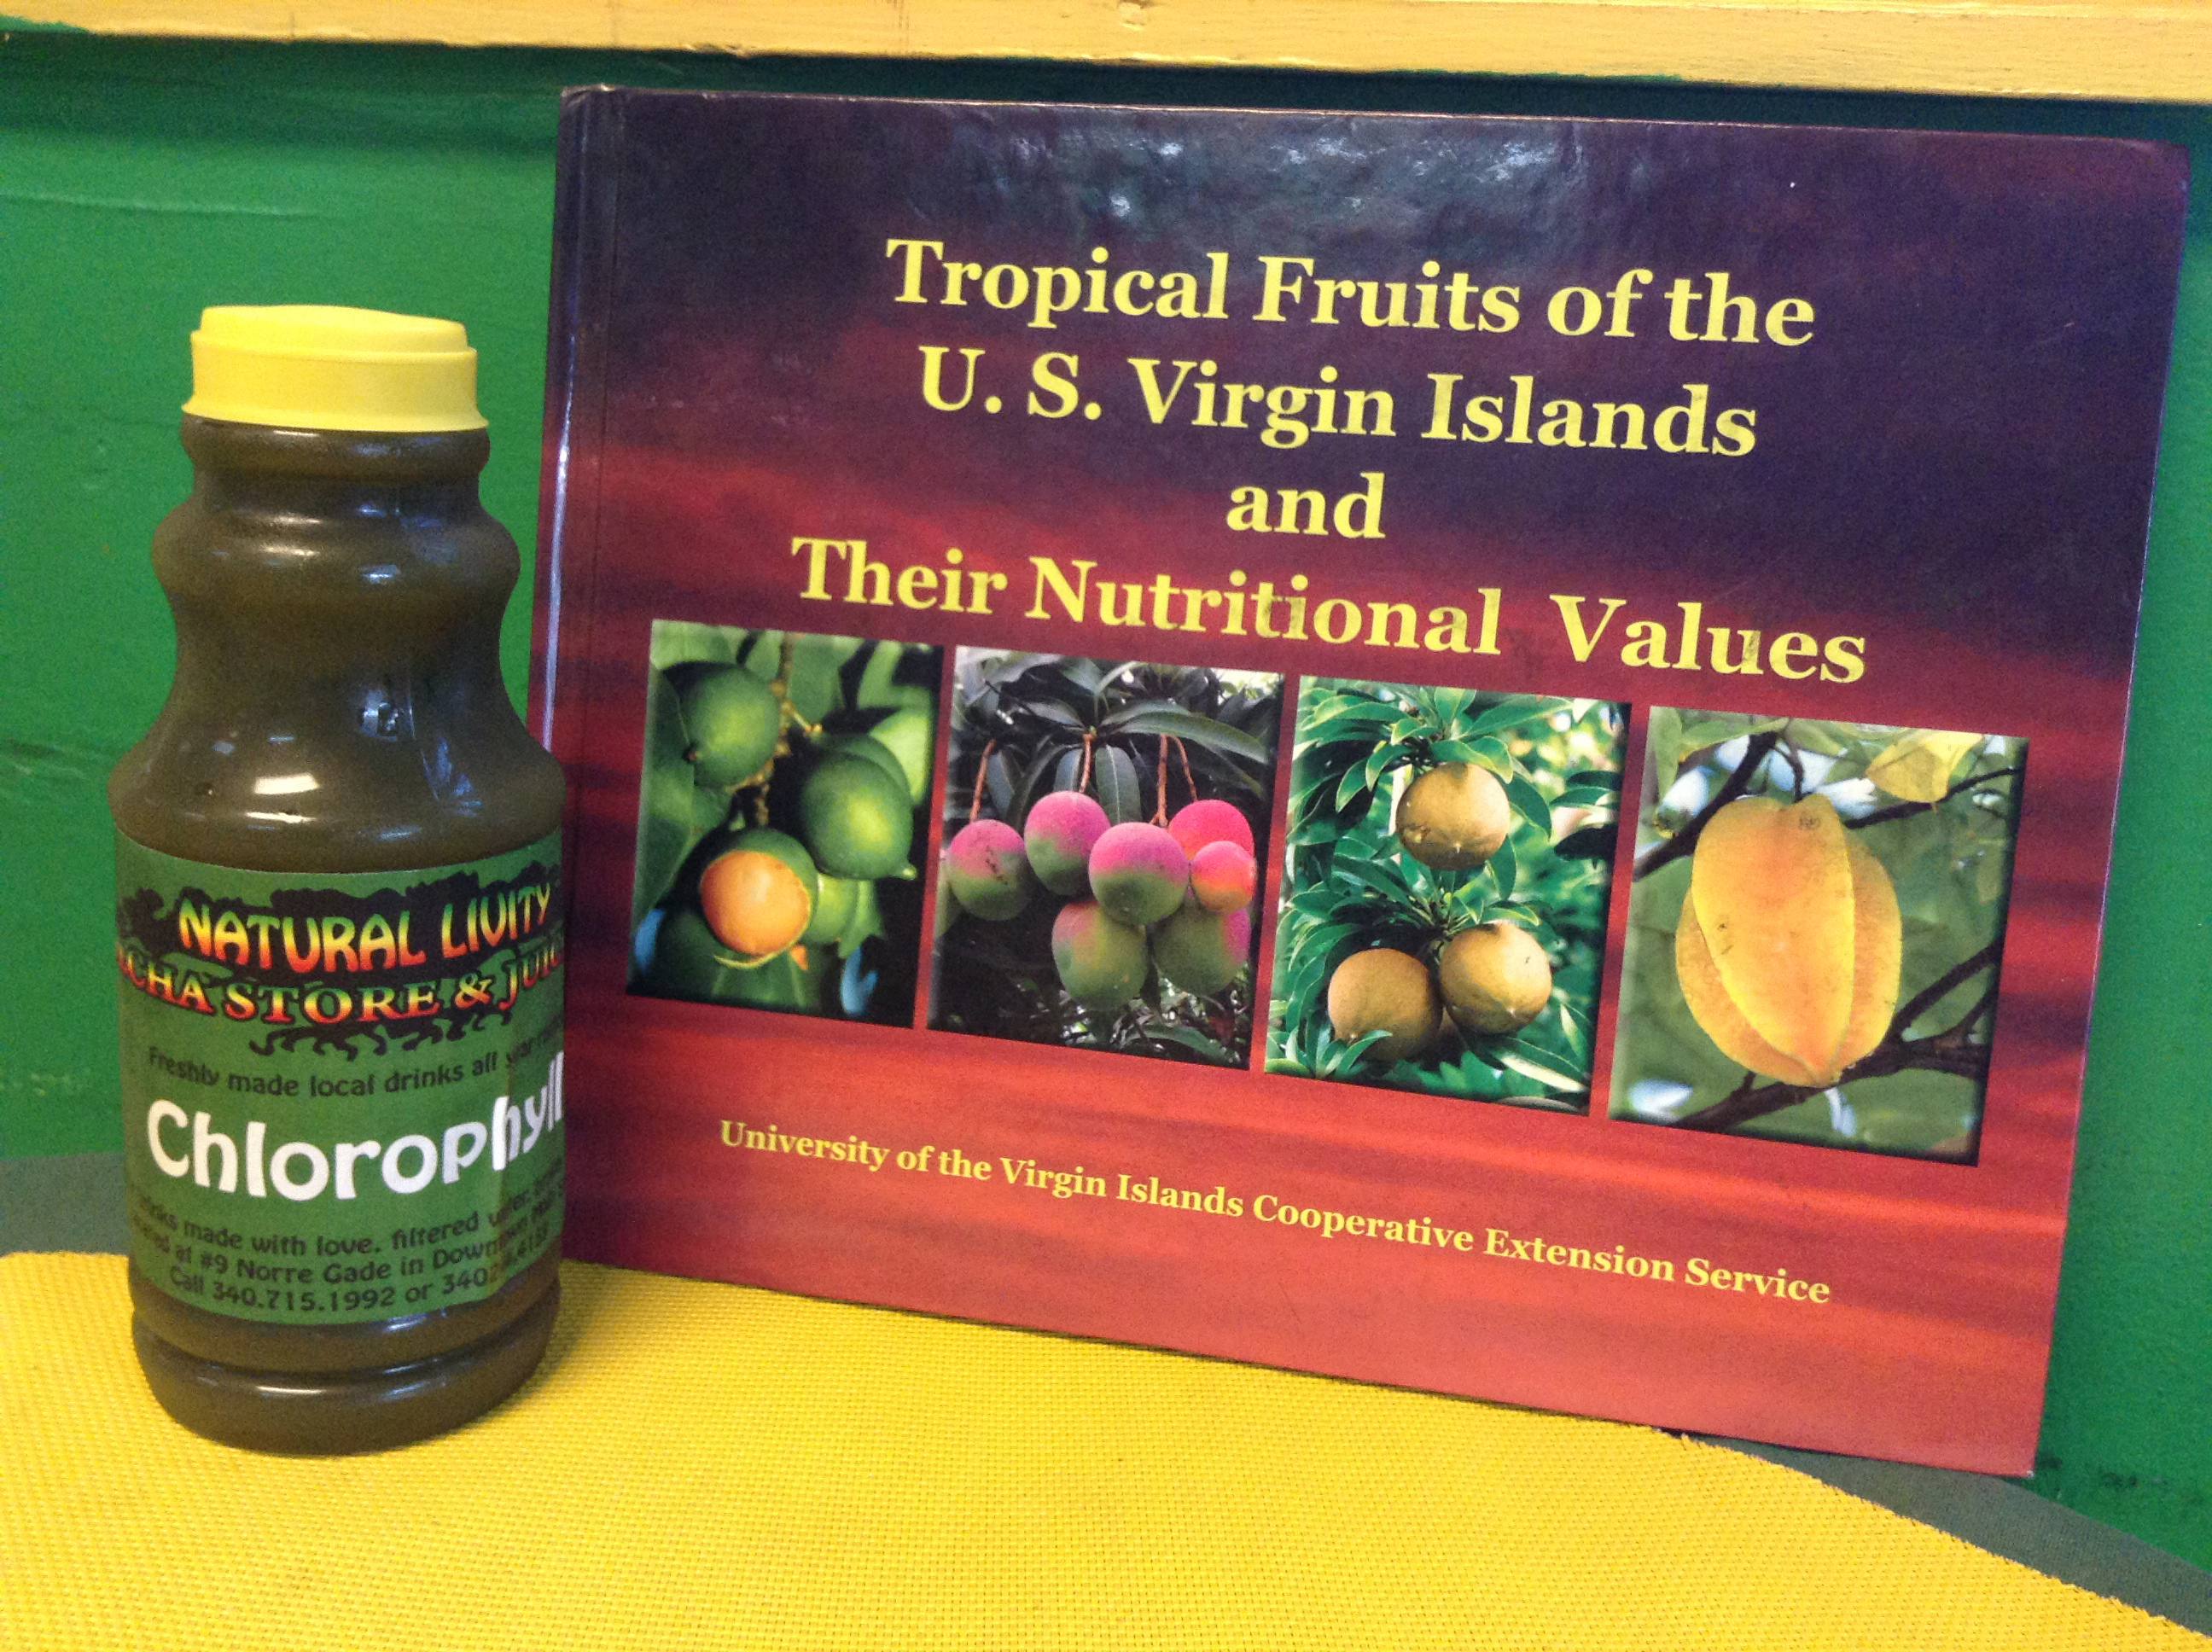 Chlorophyll made in the Virgin Islands as sold at the Natural Livity Kulcha Shop and Juice Bar